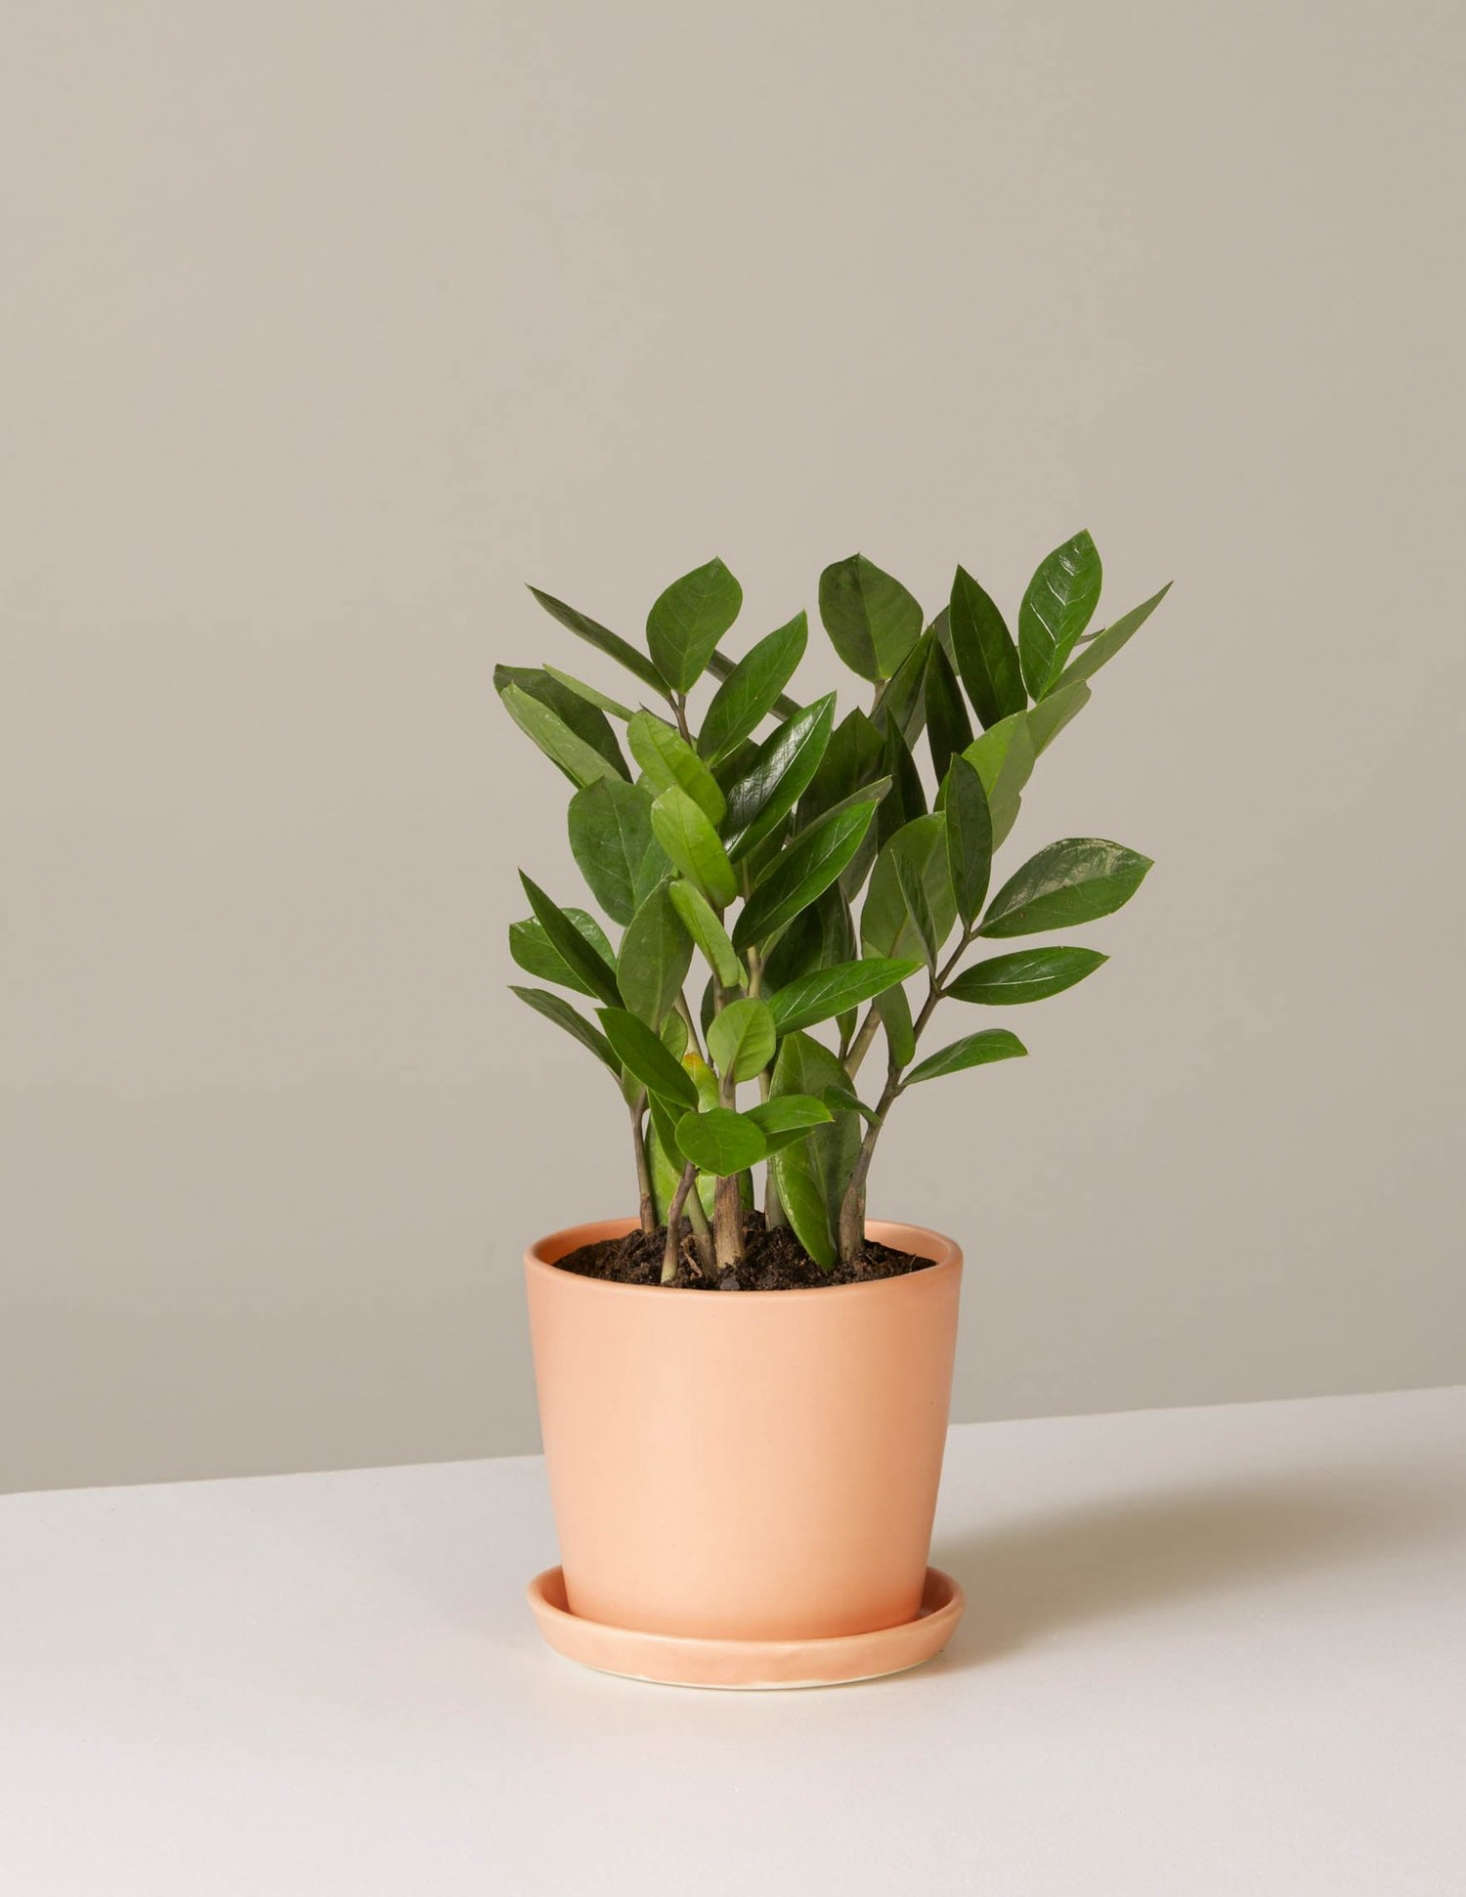 One of the least-demanding houseplants out there, Zamioculcas zamiifolia, the ZZ plant, is a favorite Sill starter option: it&#8